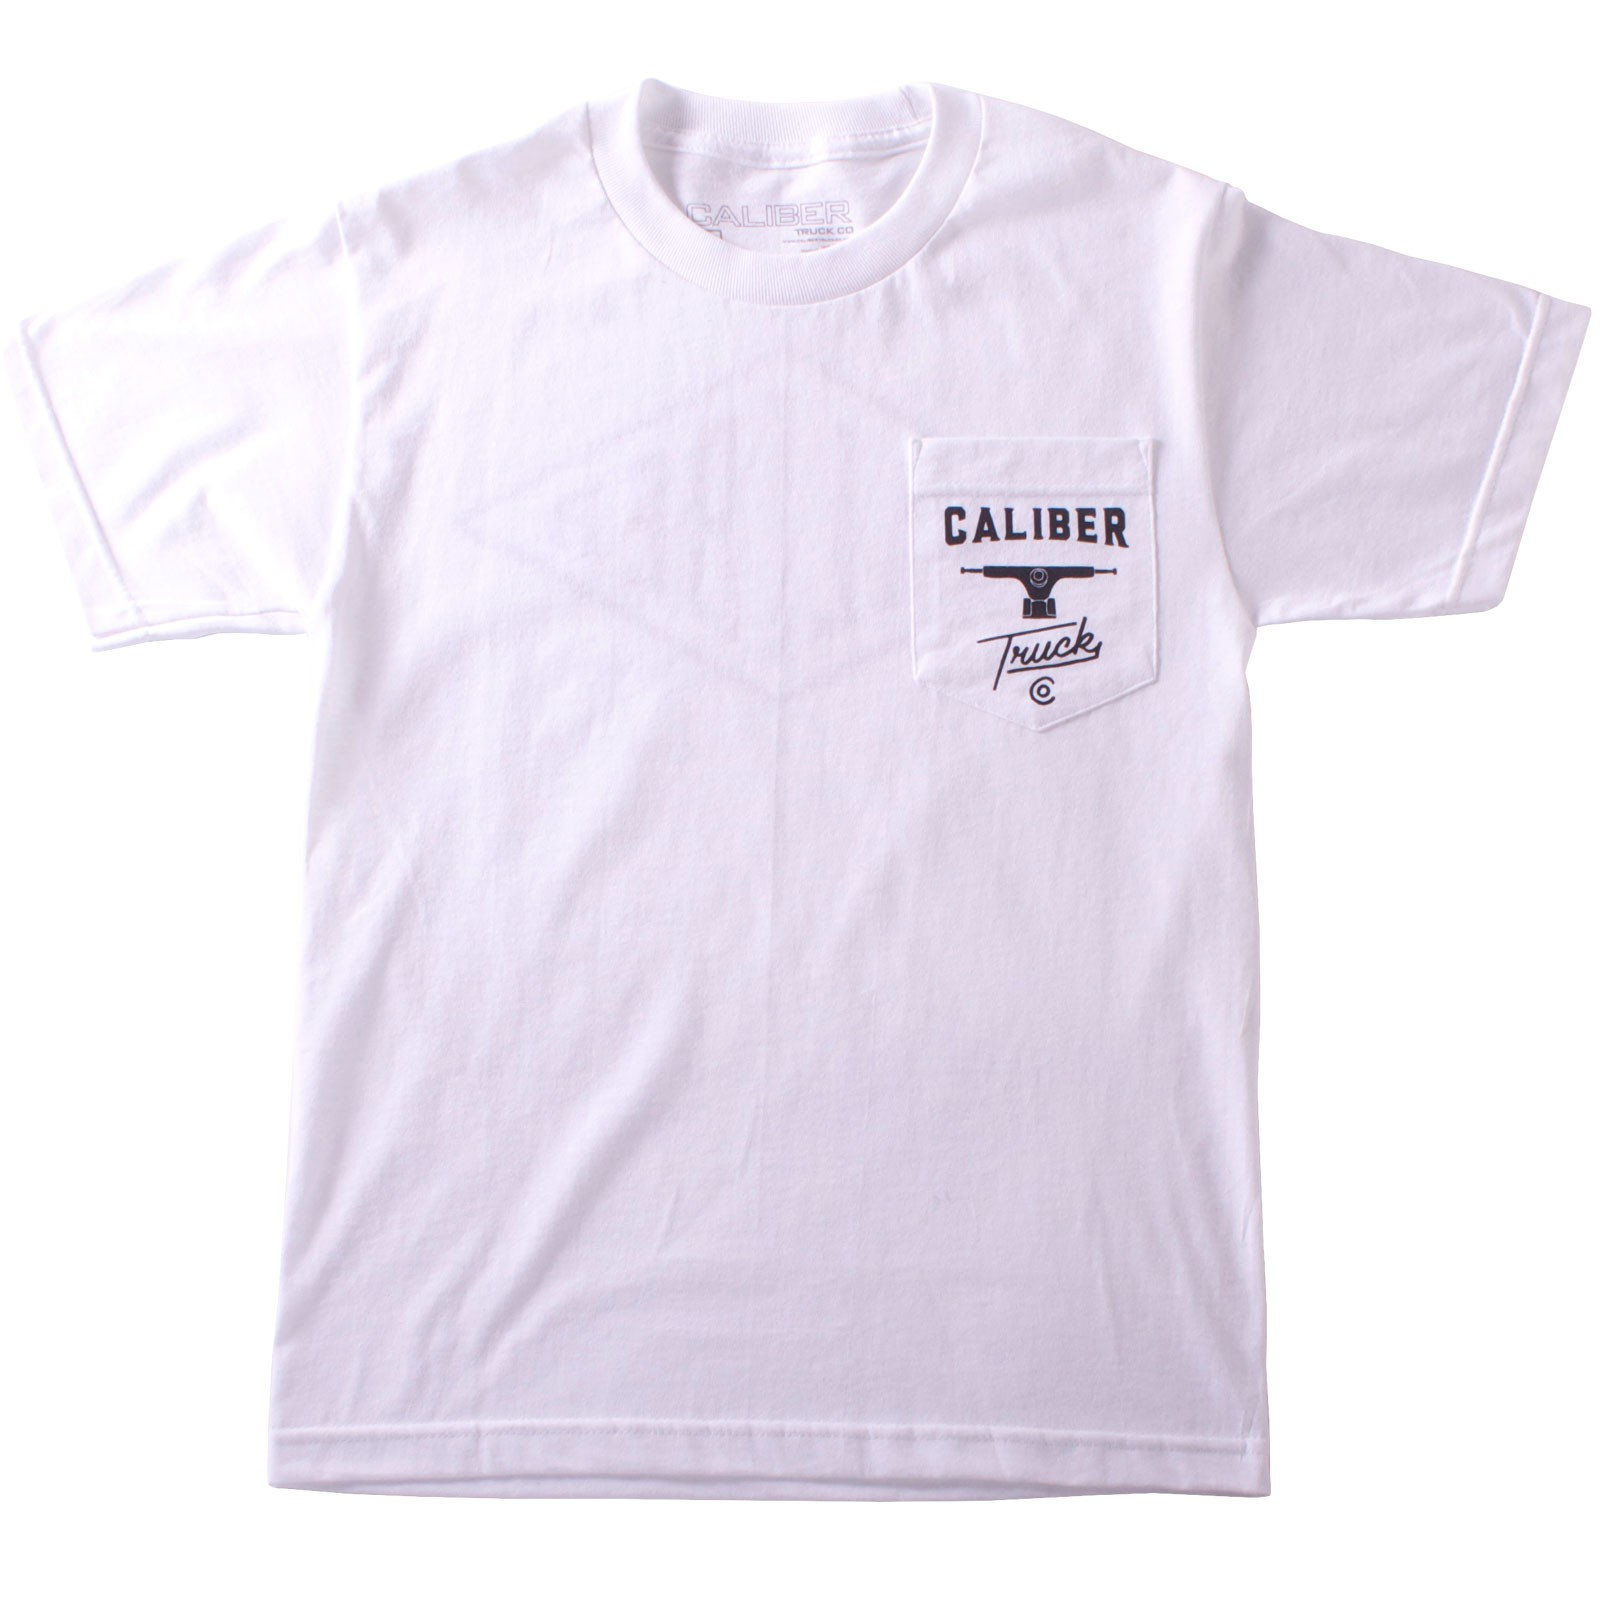 Caliber Pocket T-Shirt - White